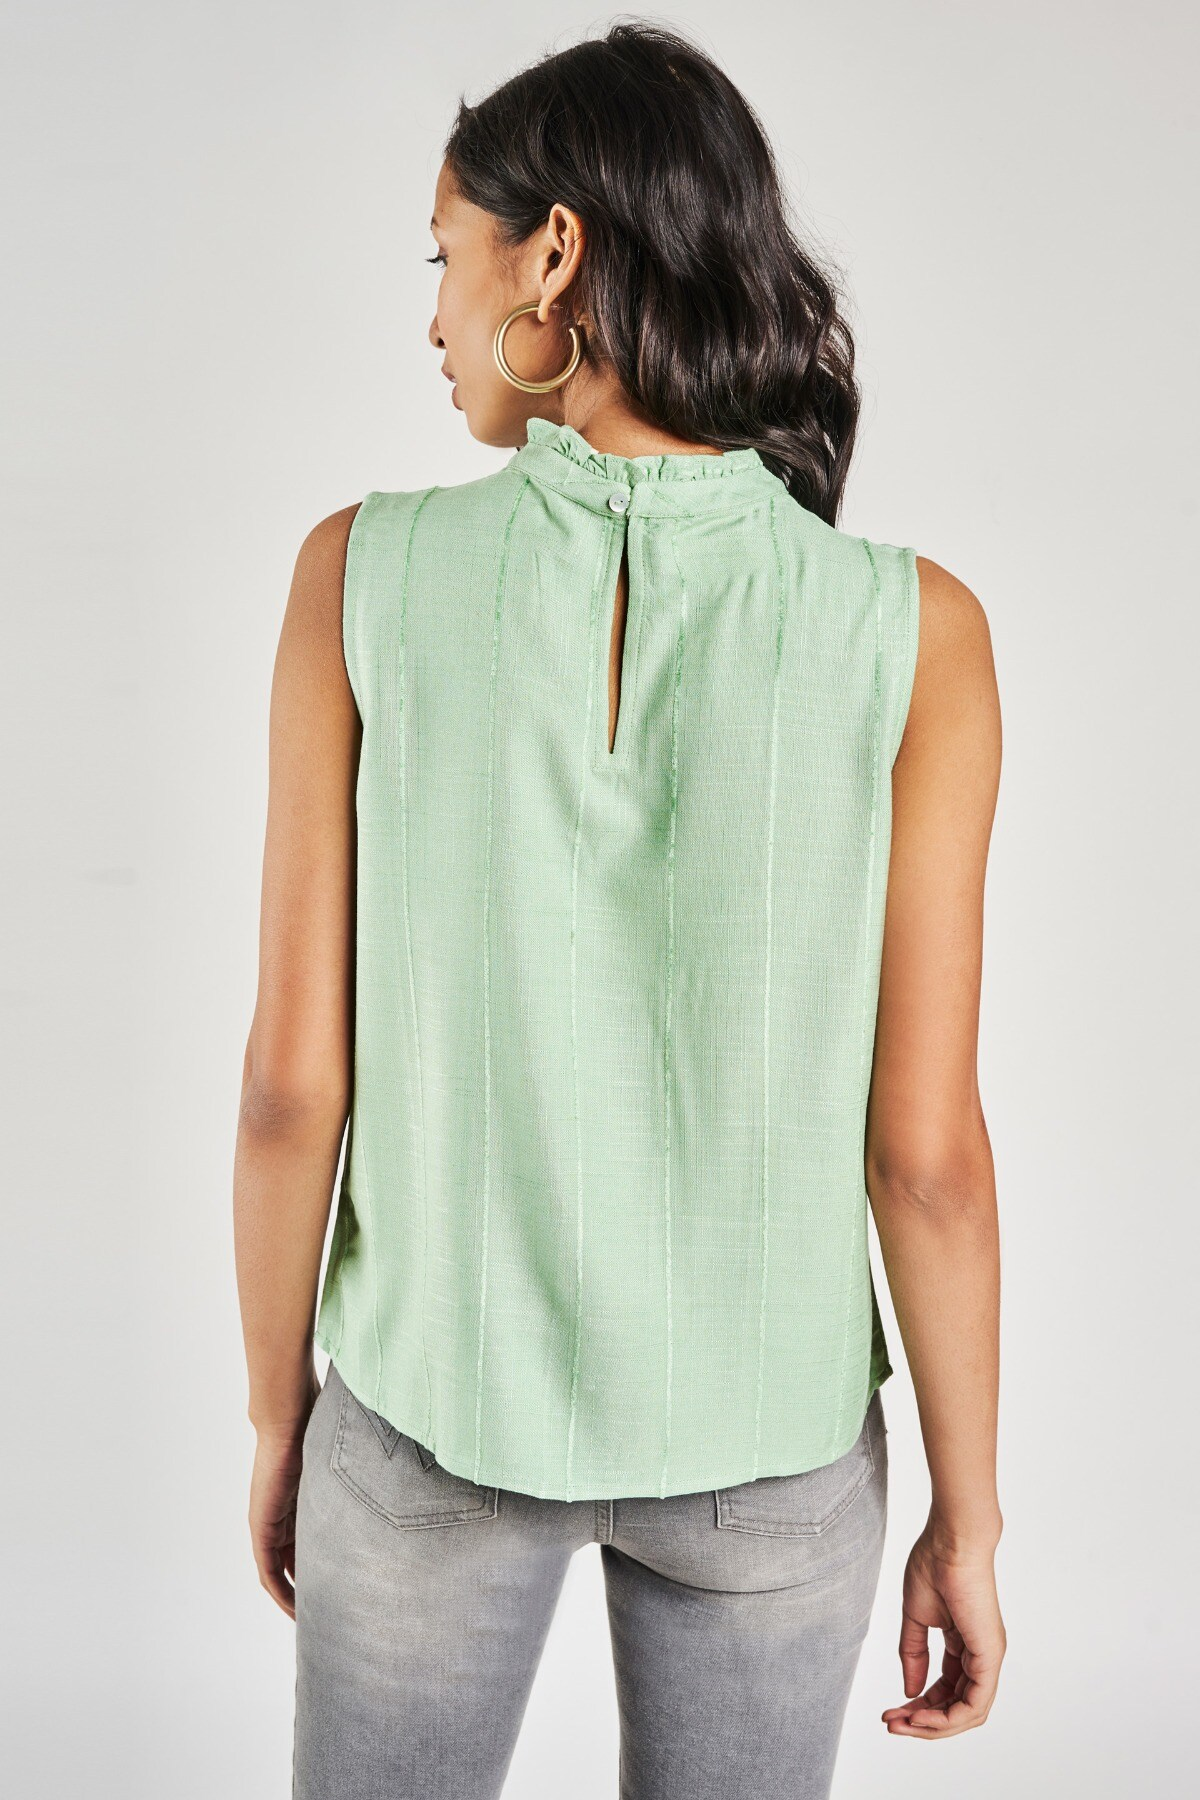 AND   Sage Green Solid A-Line Top